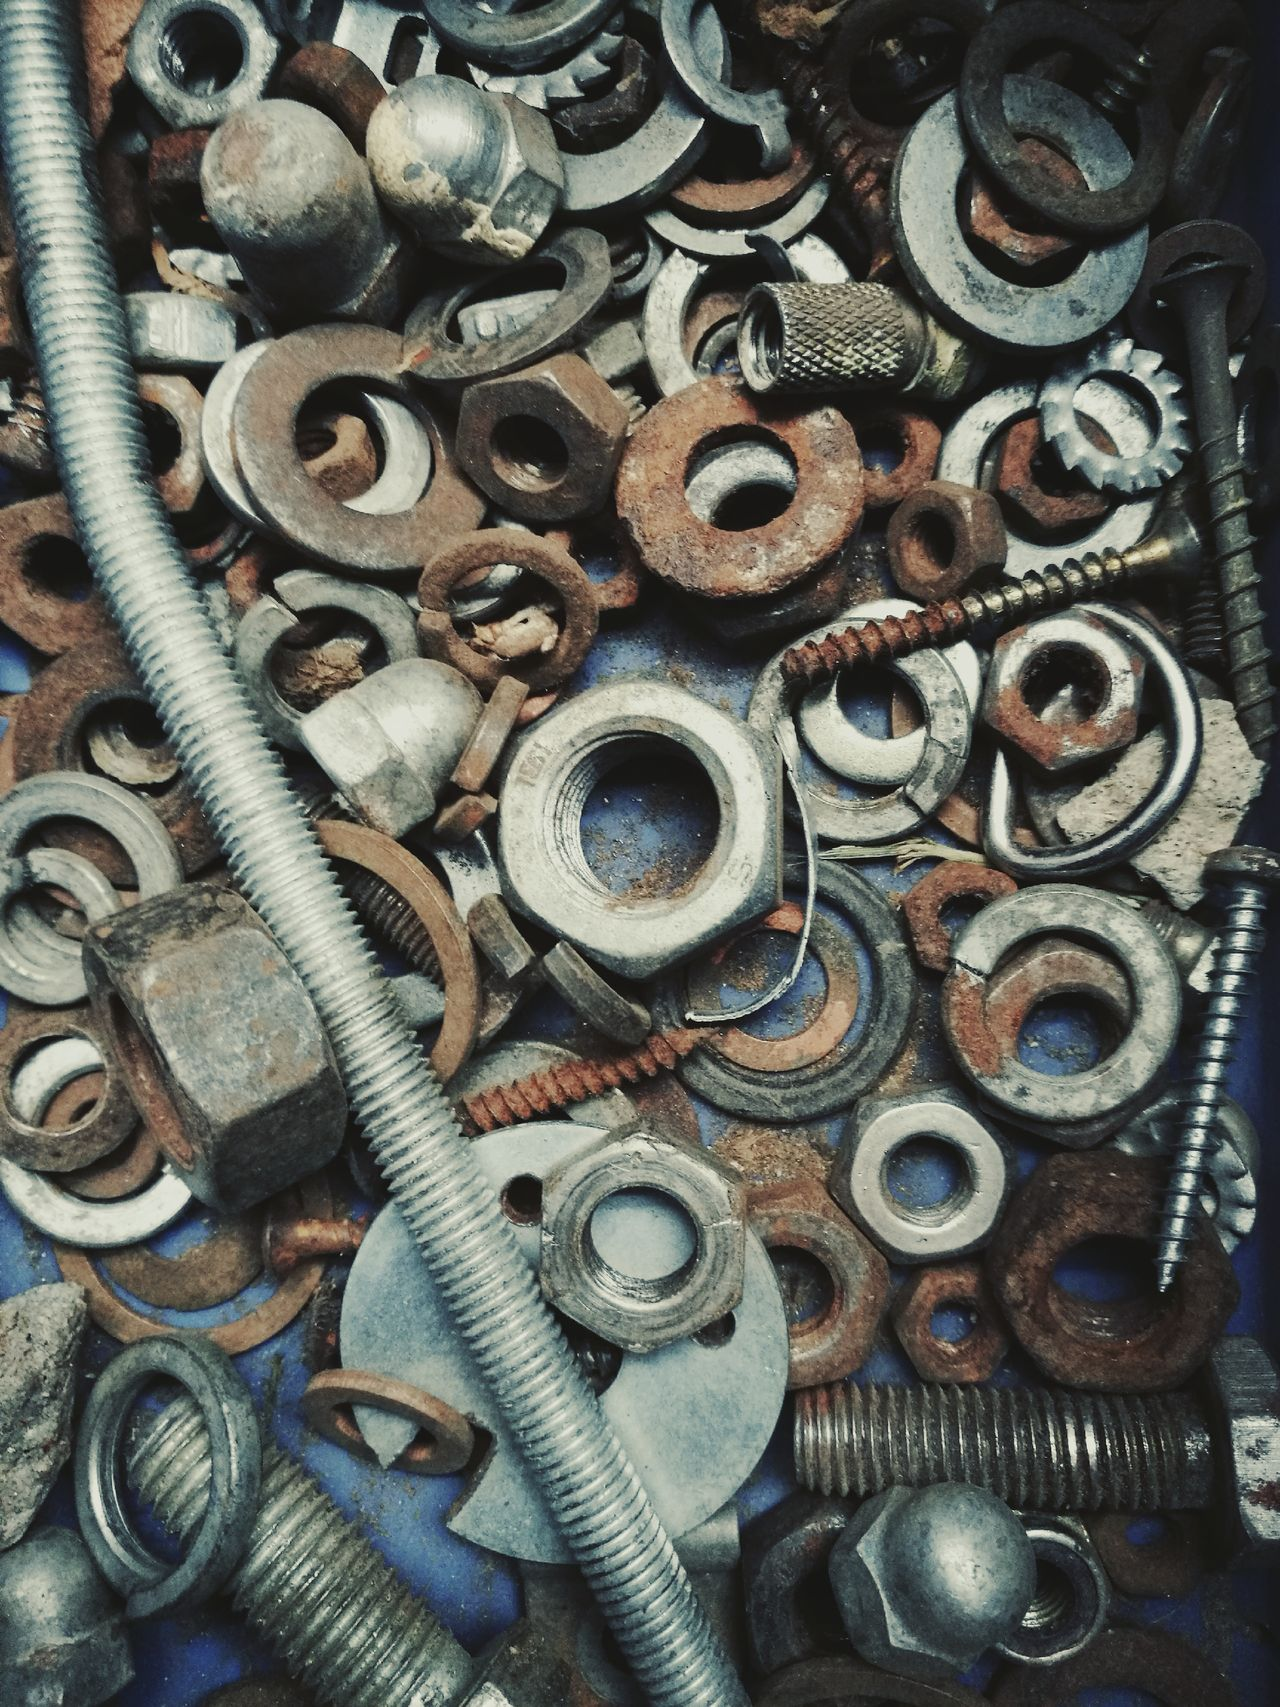 Abundance Arrangement Backgrounds Circle Collection Eye4photography  Eyeem Market EyeEm Masterclass Full Frame Geometric Shape Geometry Hardware Heap HuaweiP9 Iron - Metal Ironmongery Large Group Of Objects Lines, Shapes And Curves Metal Nuts Nuts And Bolts Odds N Ends Screws Tools Wallpaper